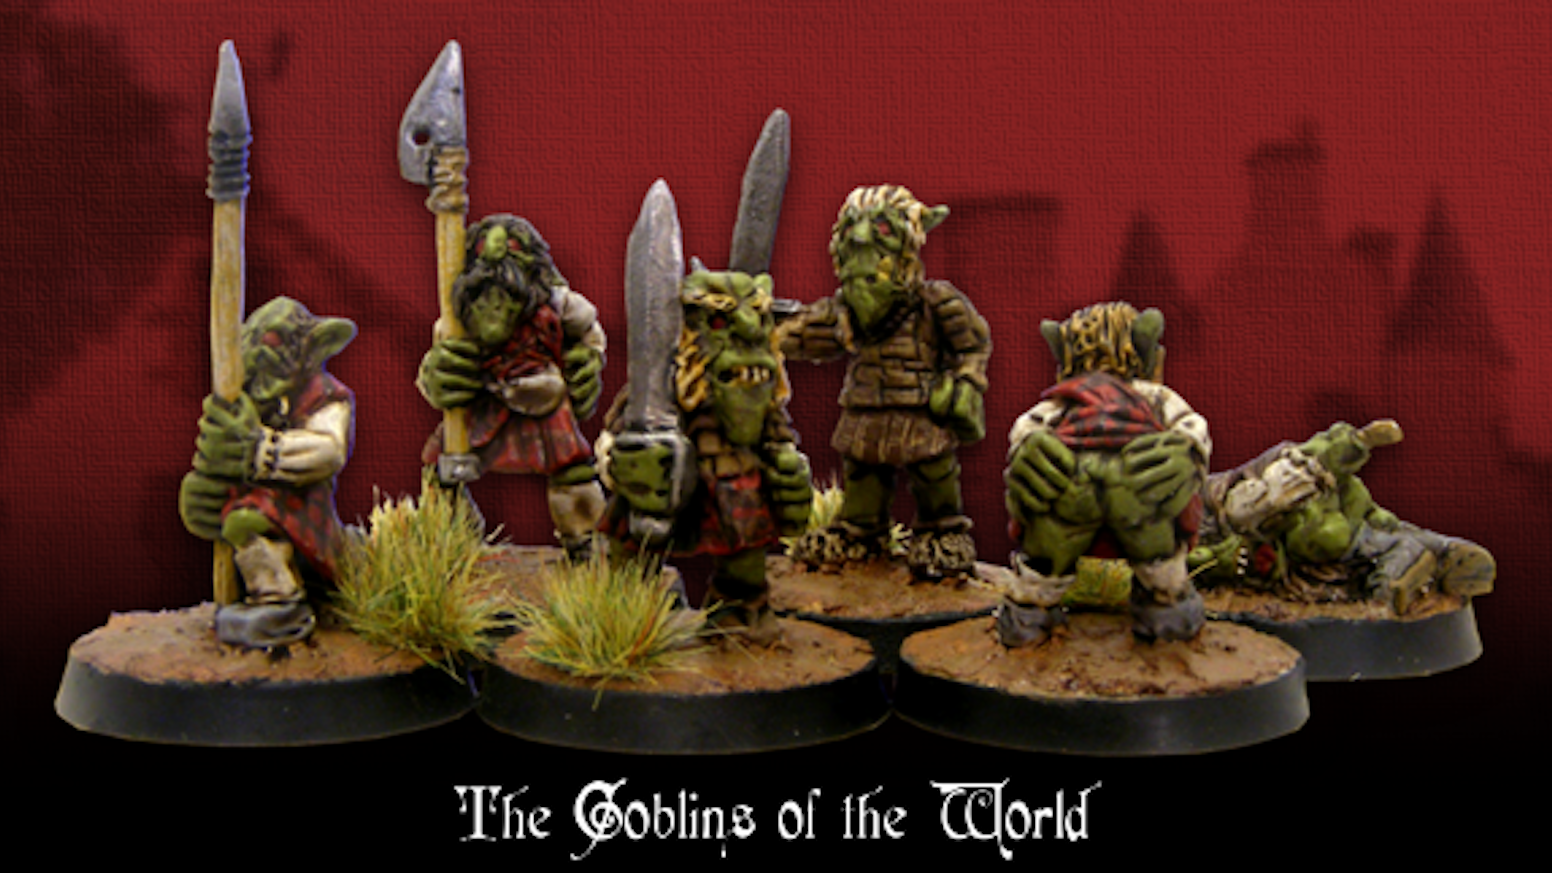 """Goblins of the World """"Braveheart goblins""""  Based of the dress styles of a particular historical fiction (Corny i know but i like them)"""